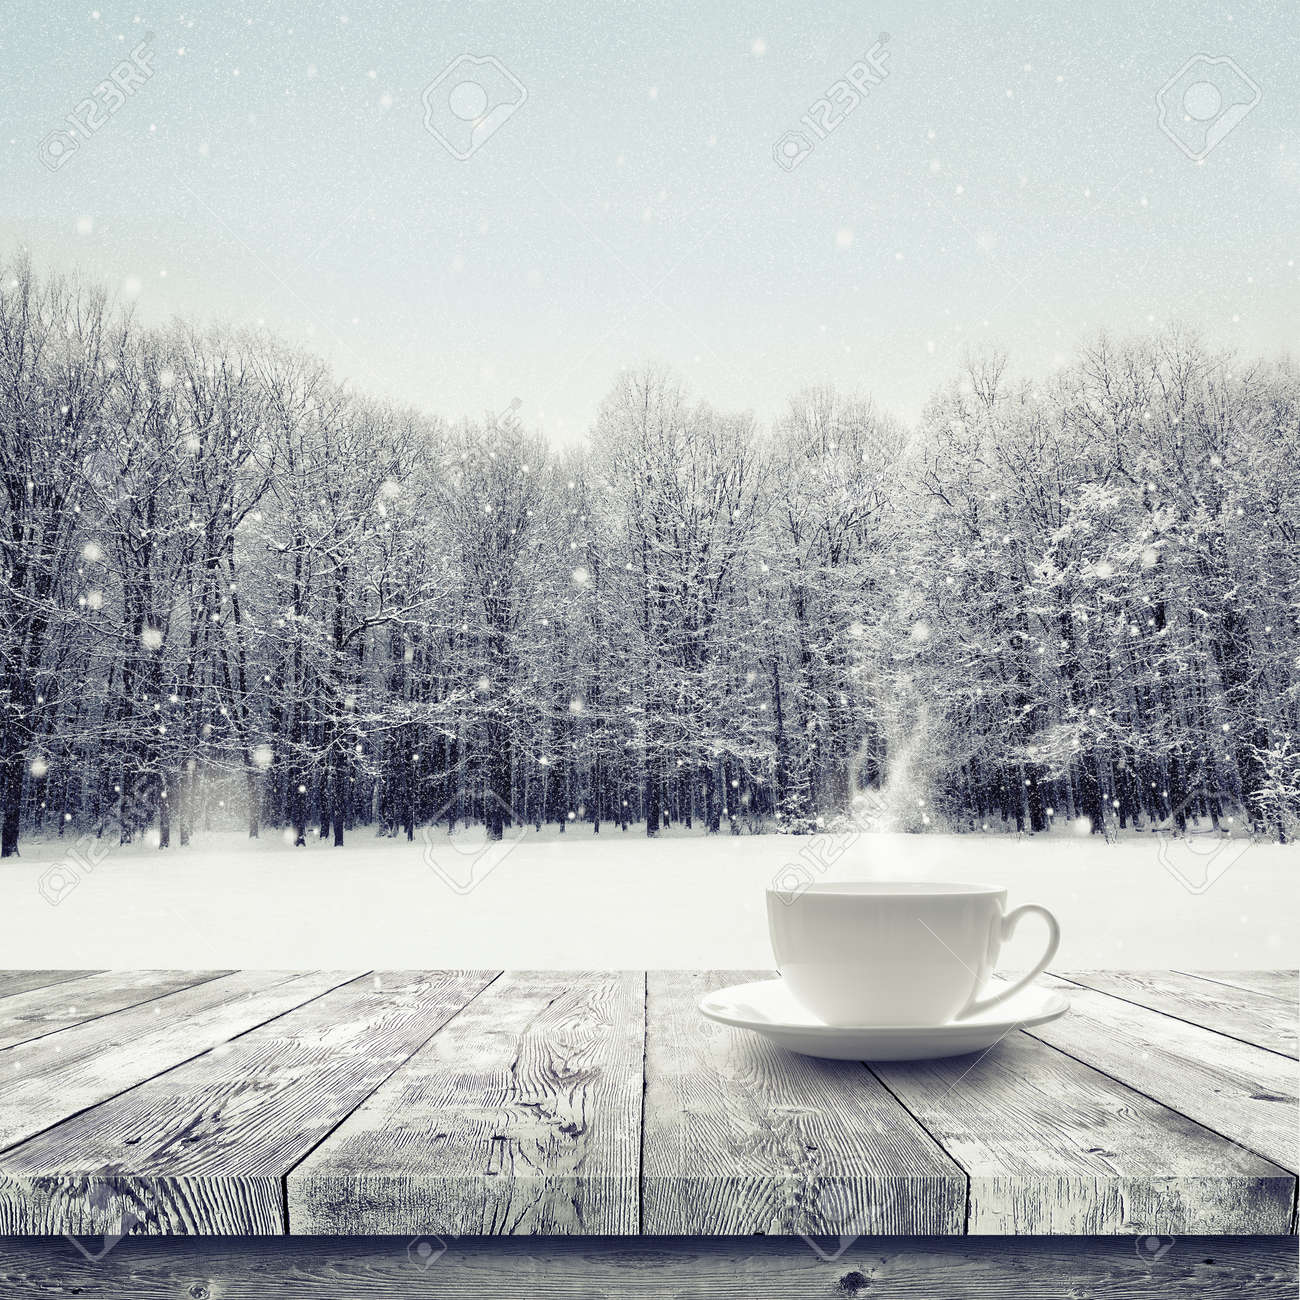 Hot drink in the cup on wooden table over winter snow covered forest. Beauty nature background - 50453675